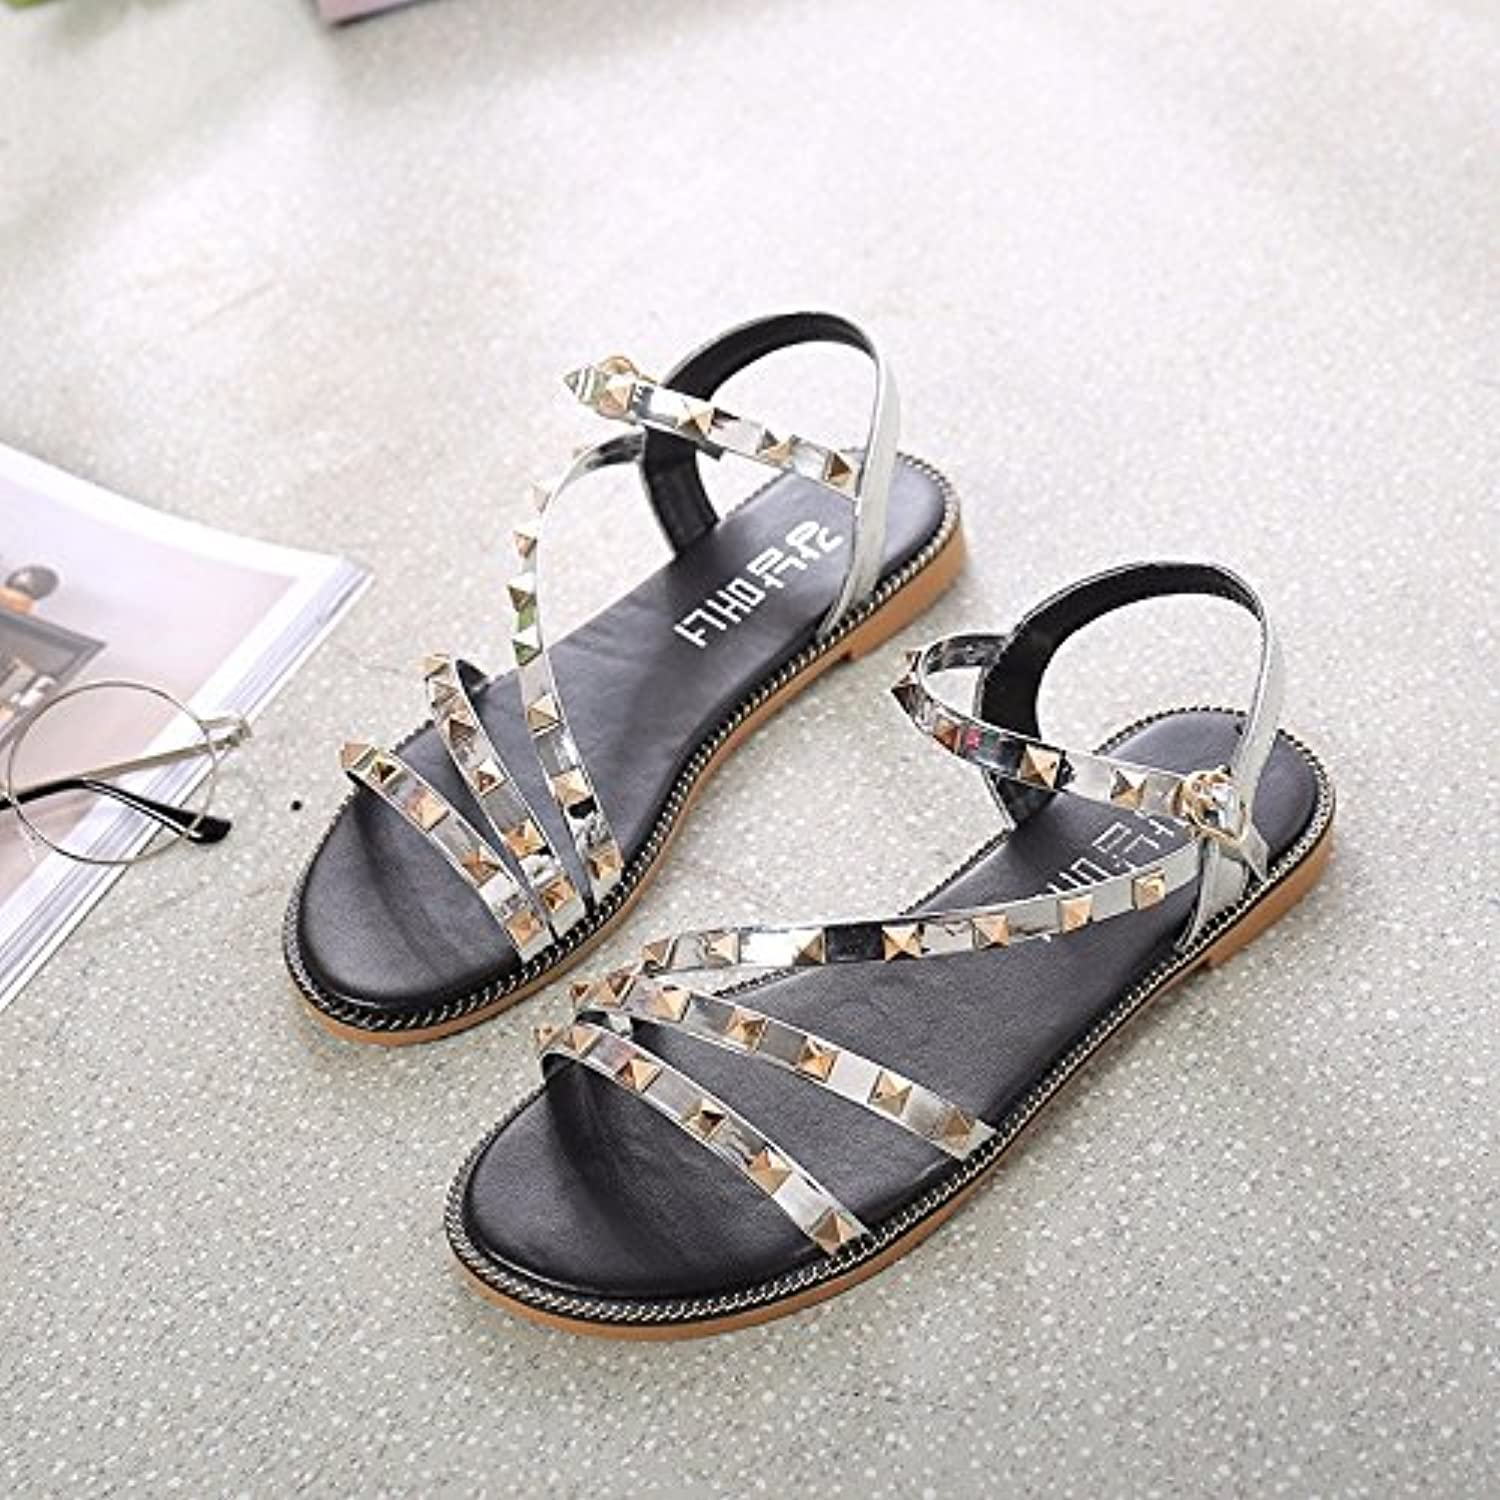 KAI-Flat with flat sandals all-match Rome shoes,silvery,Thirty-six